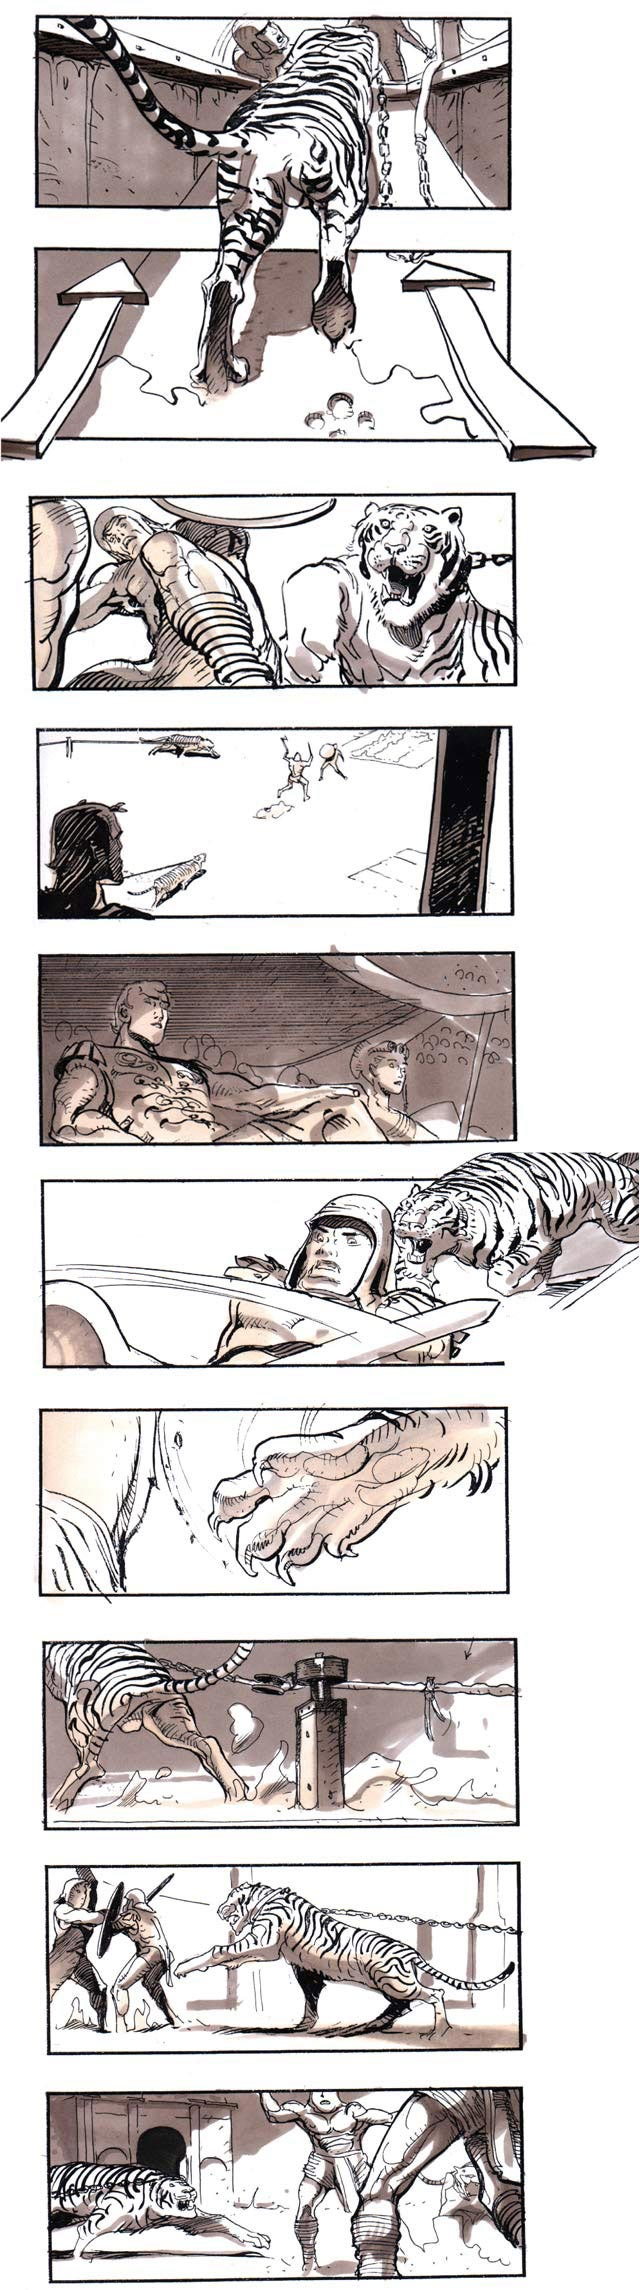 Gladiator Storyboard Sylvain Despretz Sick As Fuck Perspective